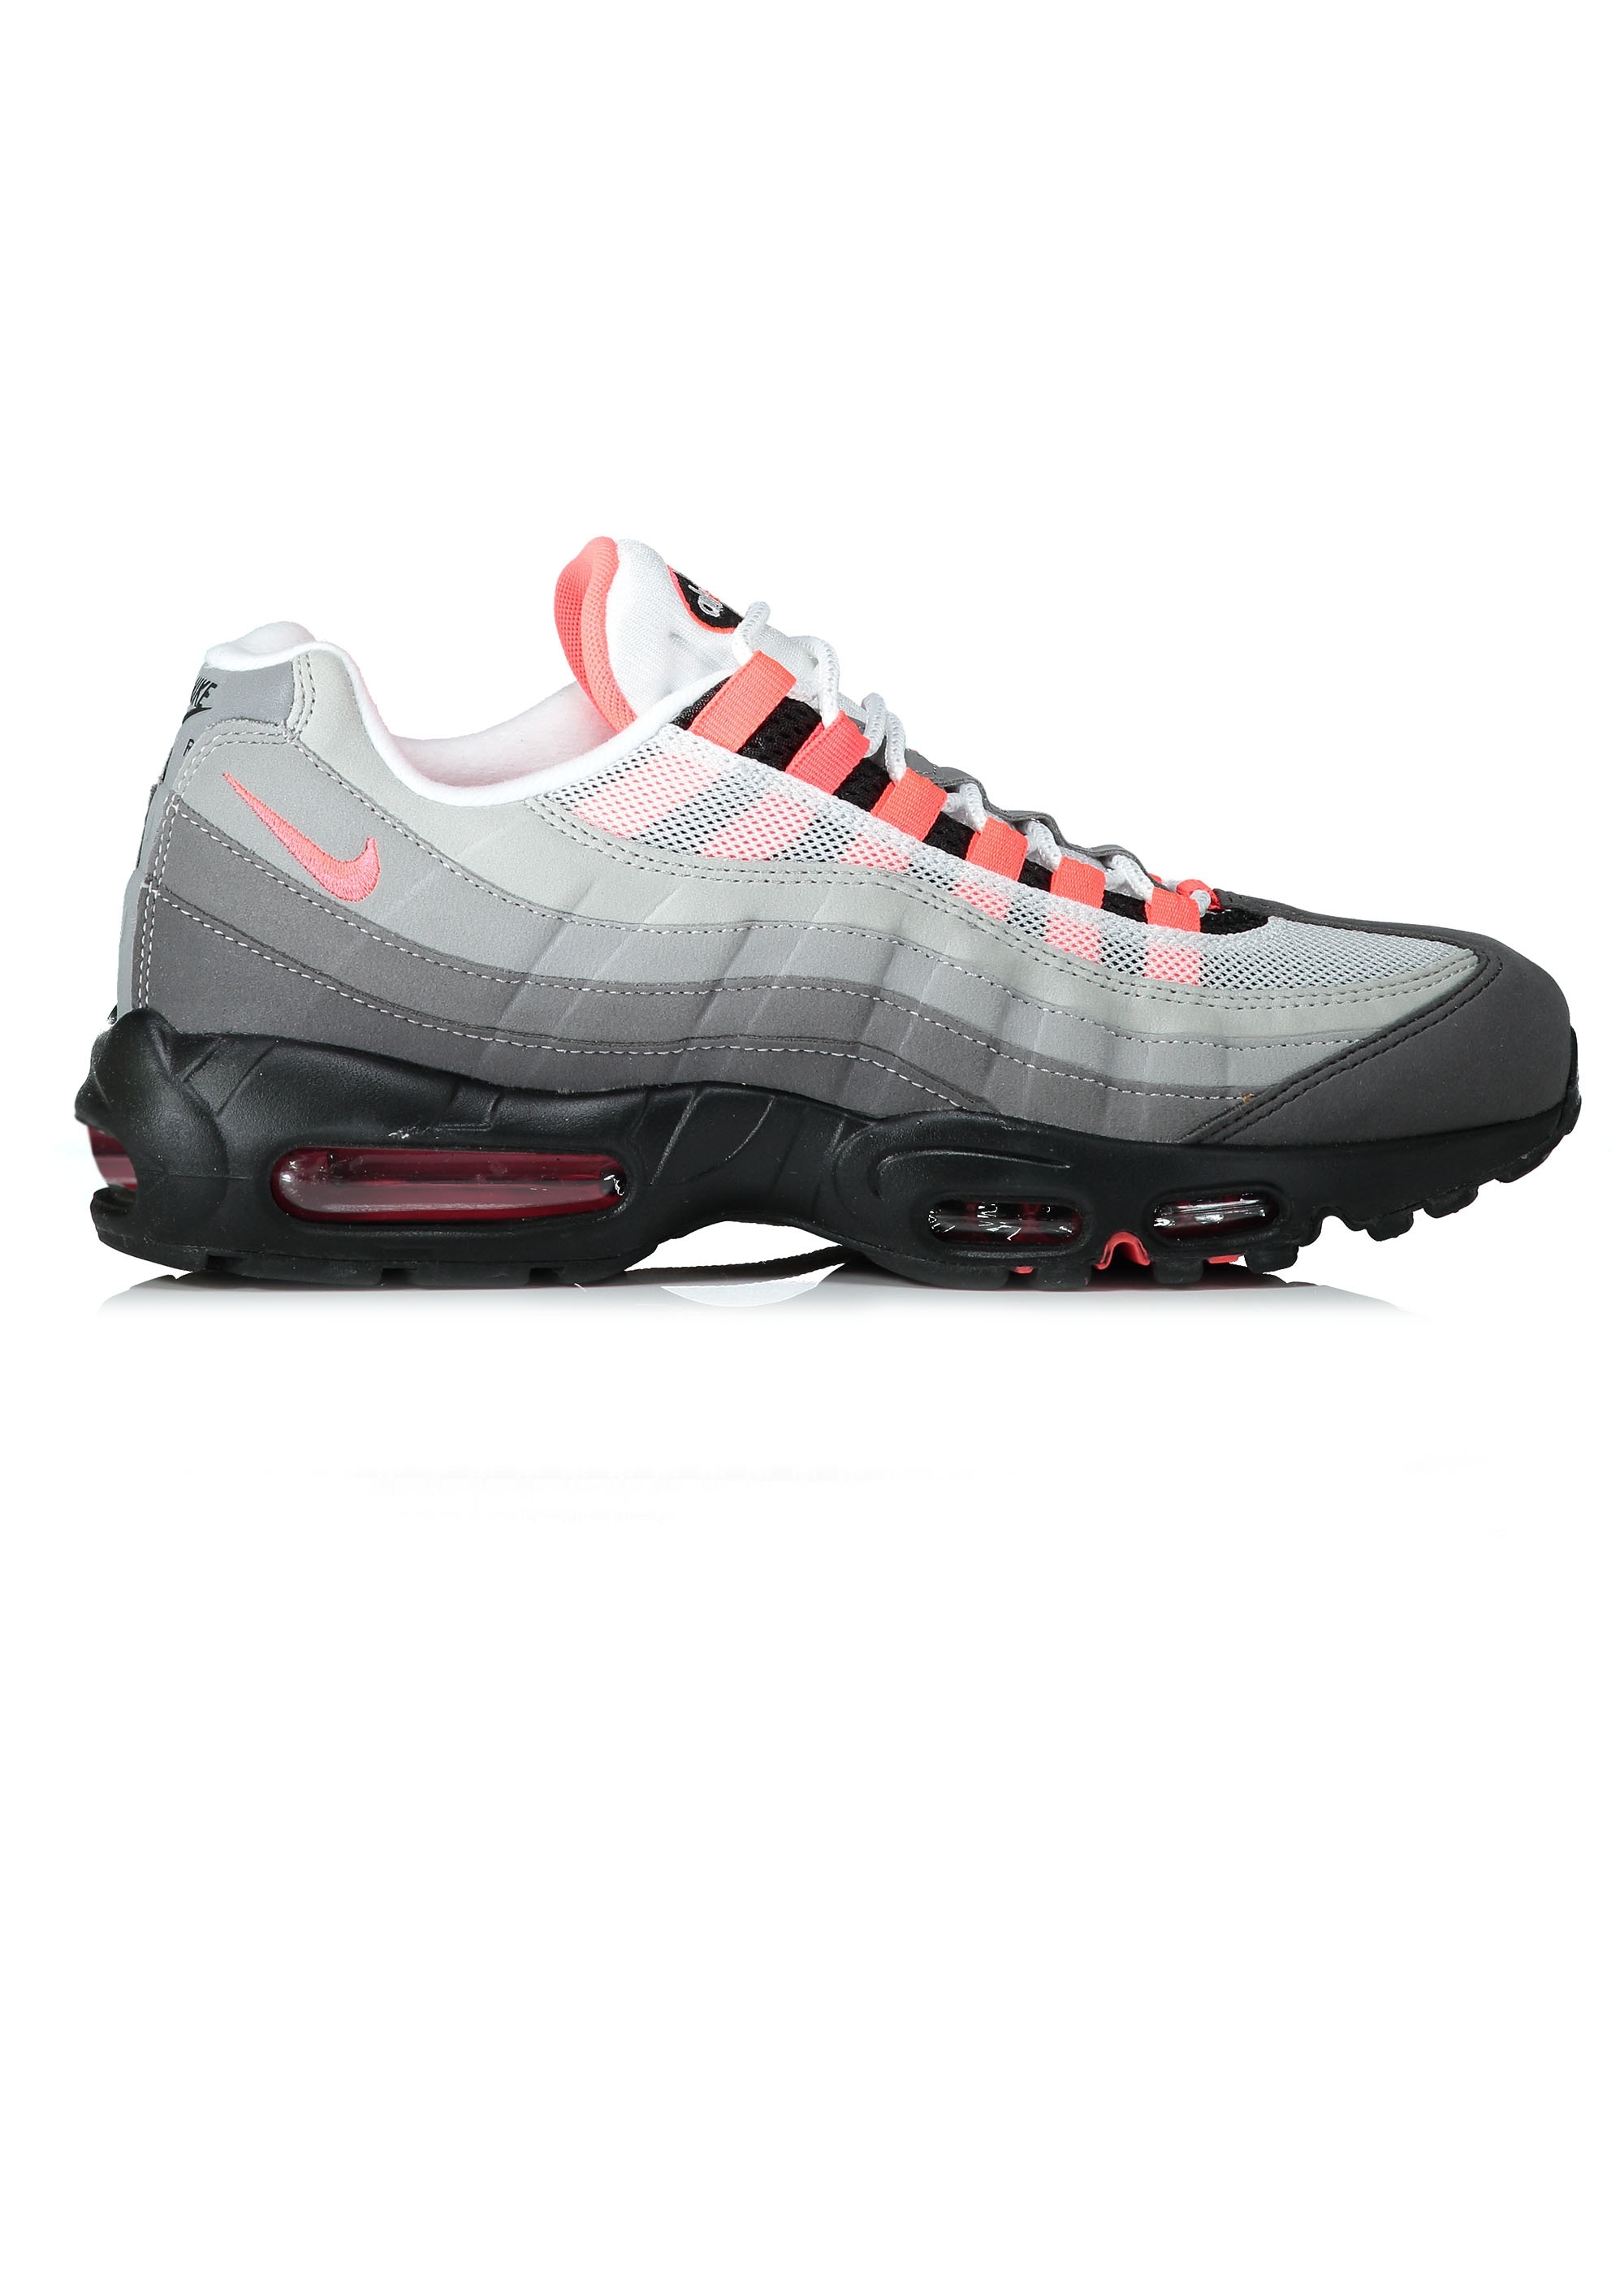 armario Biblia entusiasta  Nike Footwear Air Max 95 OG - White / Solar Red - Trainers from Triads UK